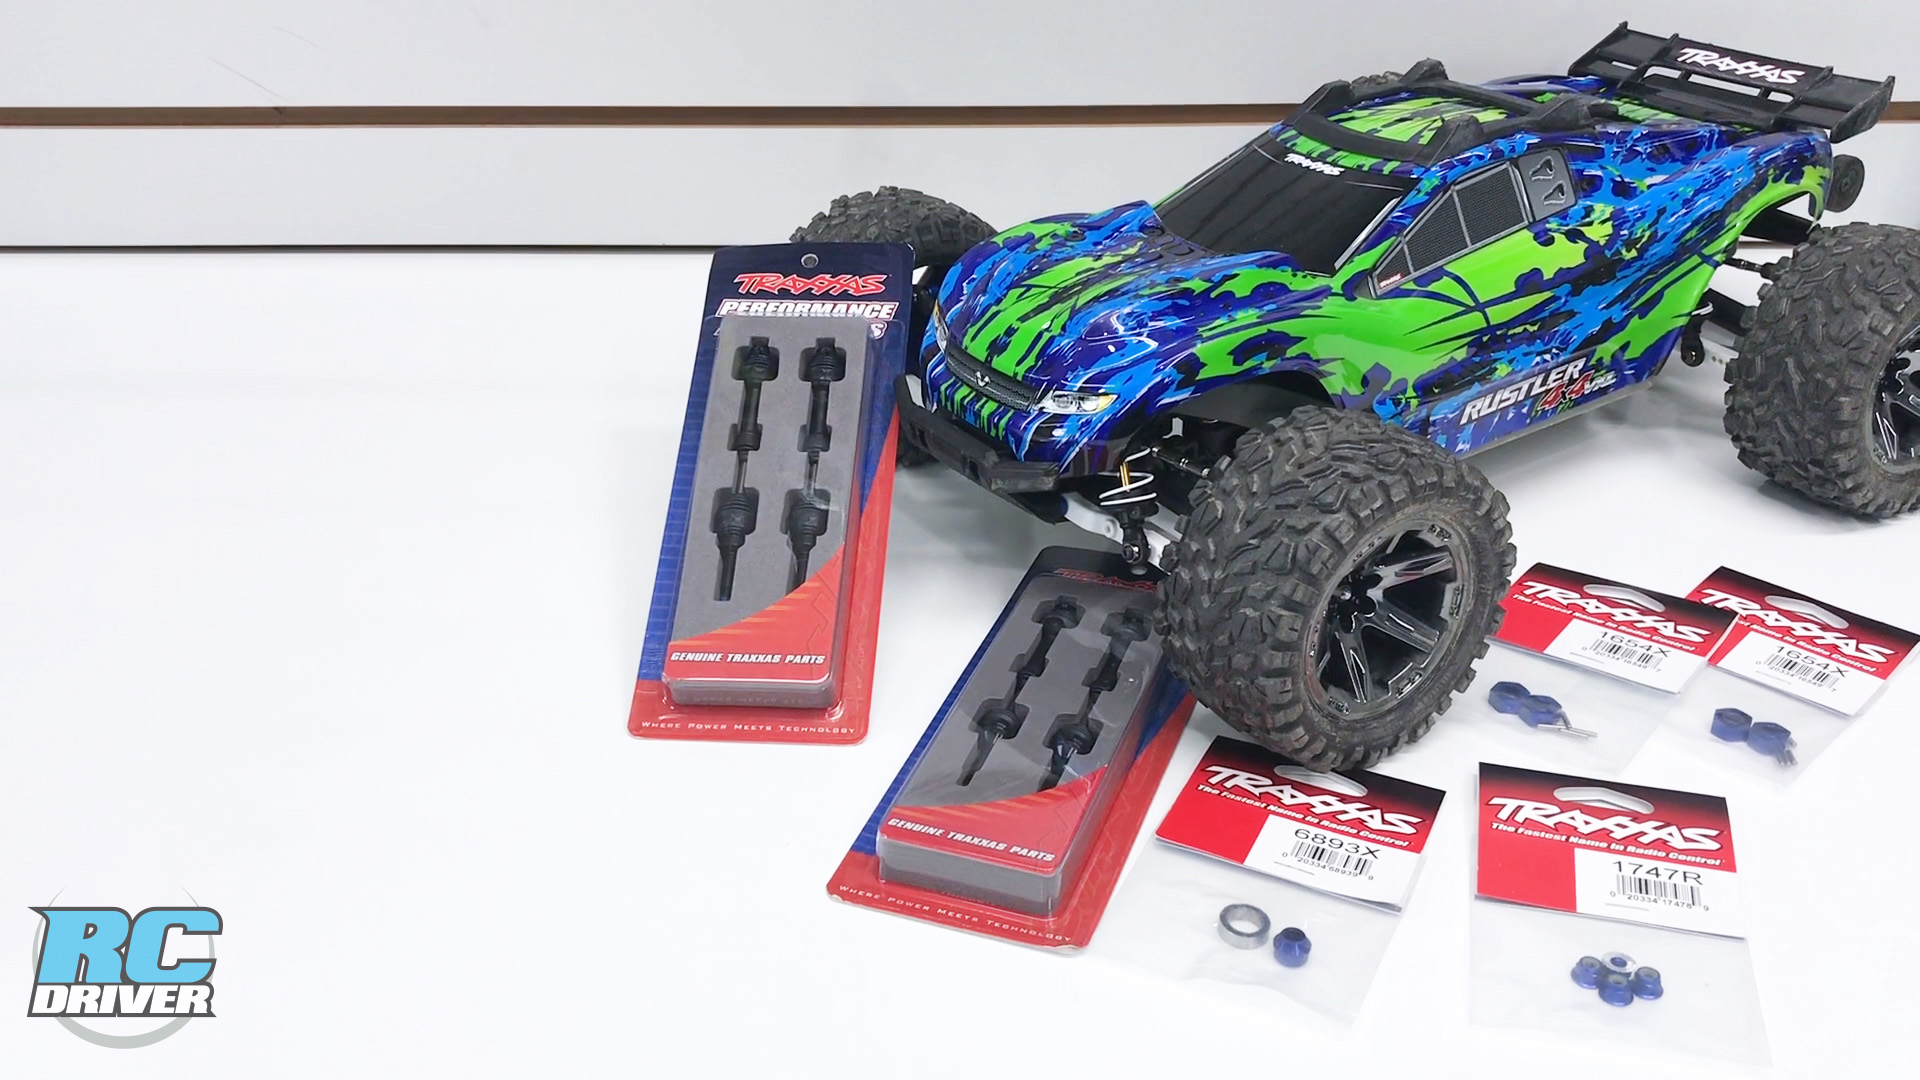 Traxxas Rustler 4x4 VXL Full Upgrade Project Truck Part 2